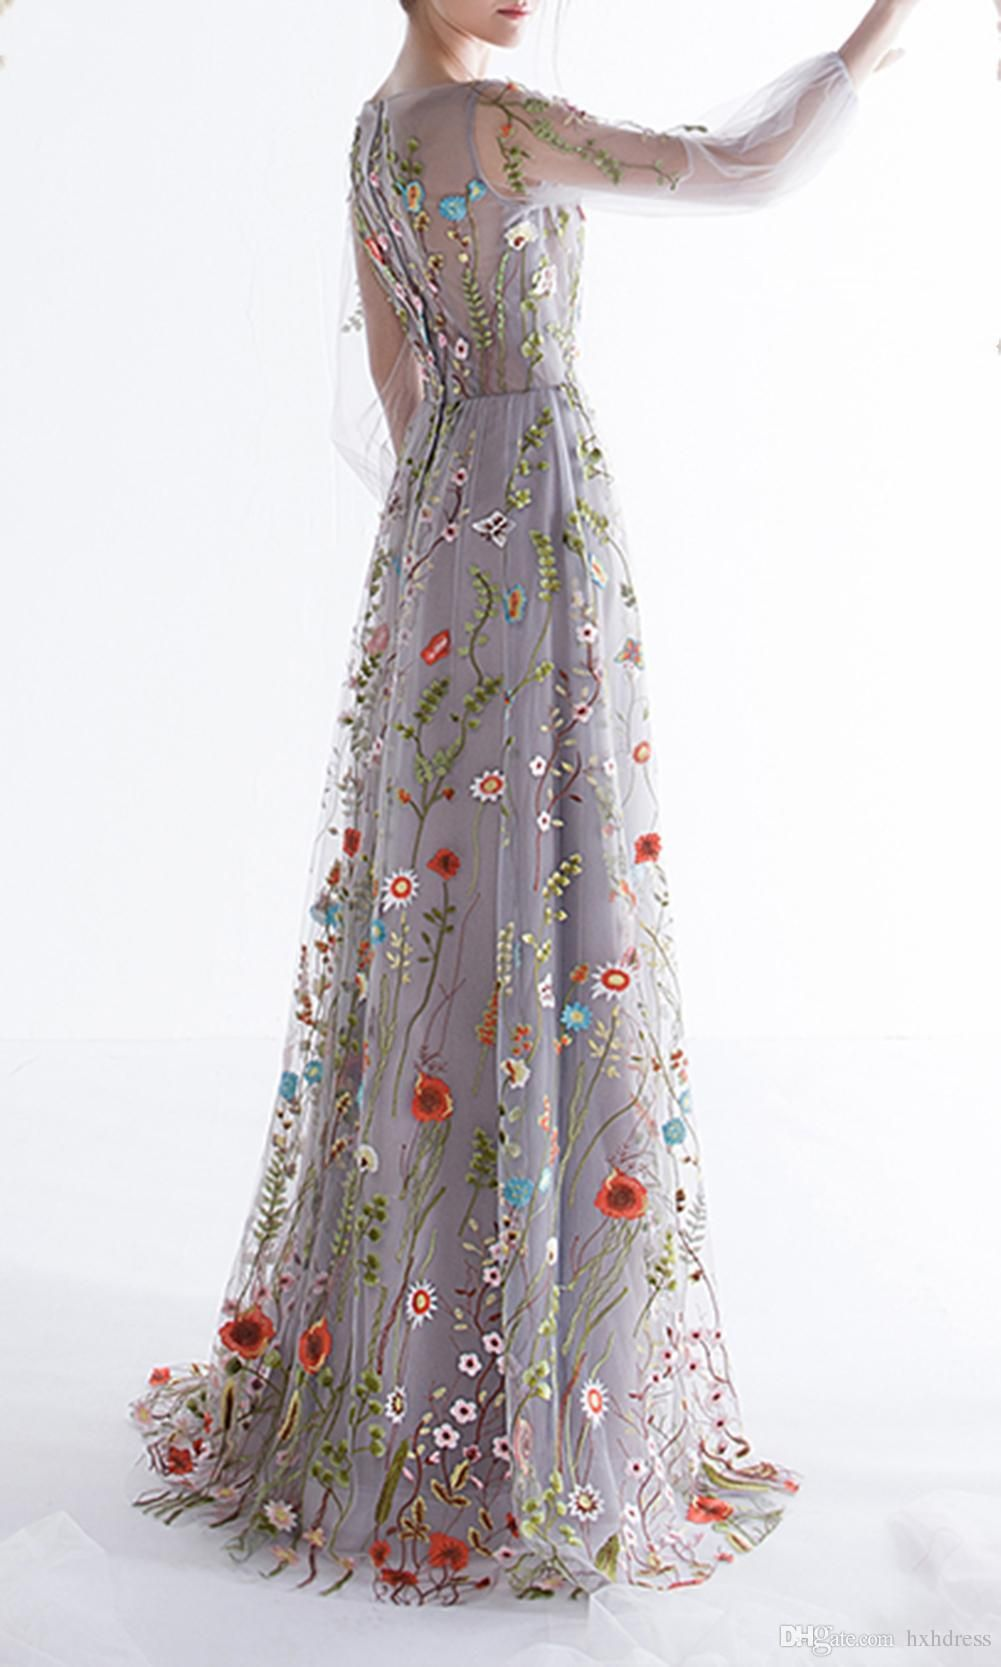 New Womens Long Sleeves Prom Dresses Trendy Floral Embroidery A Line Evening Dresses Formal Party Gowns Pageant Dress Vestios De Novia From Hxhdress 99 19 D Prom Dresses Long With Sleeves [ 1667 x 1001 Pixel ]